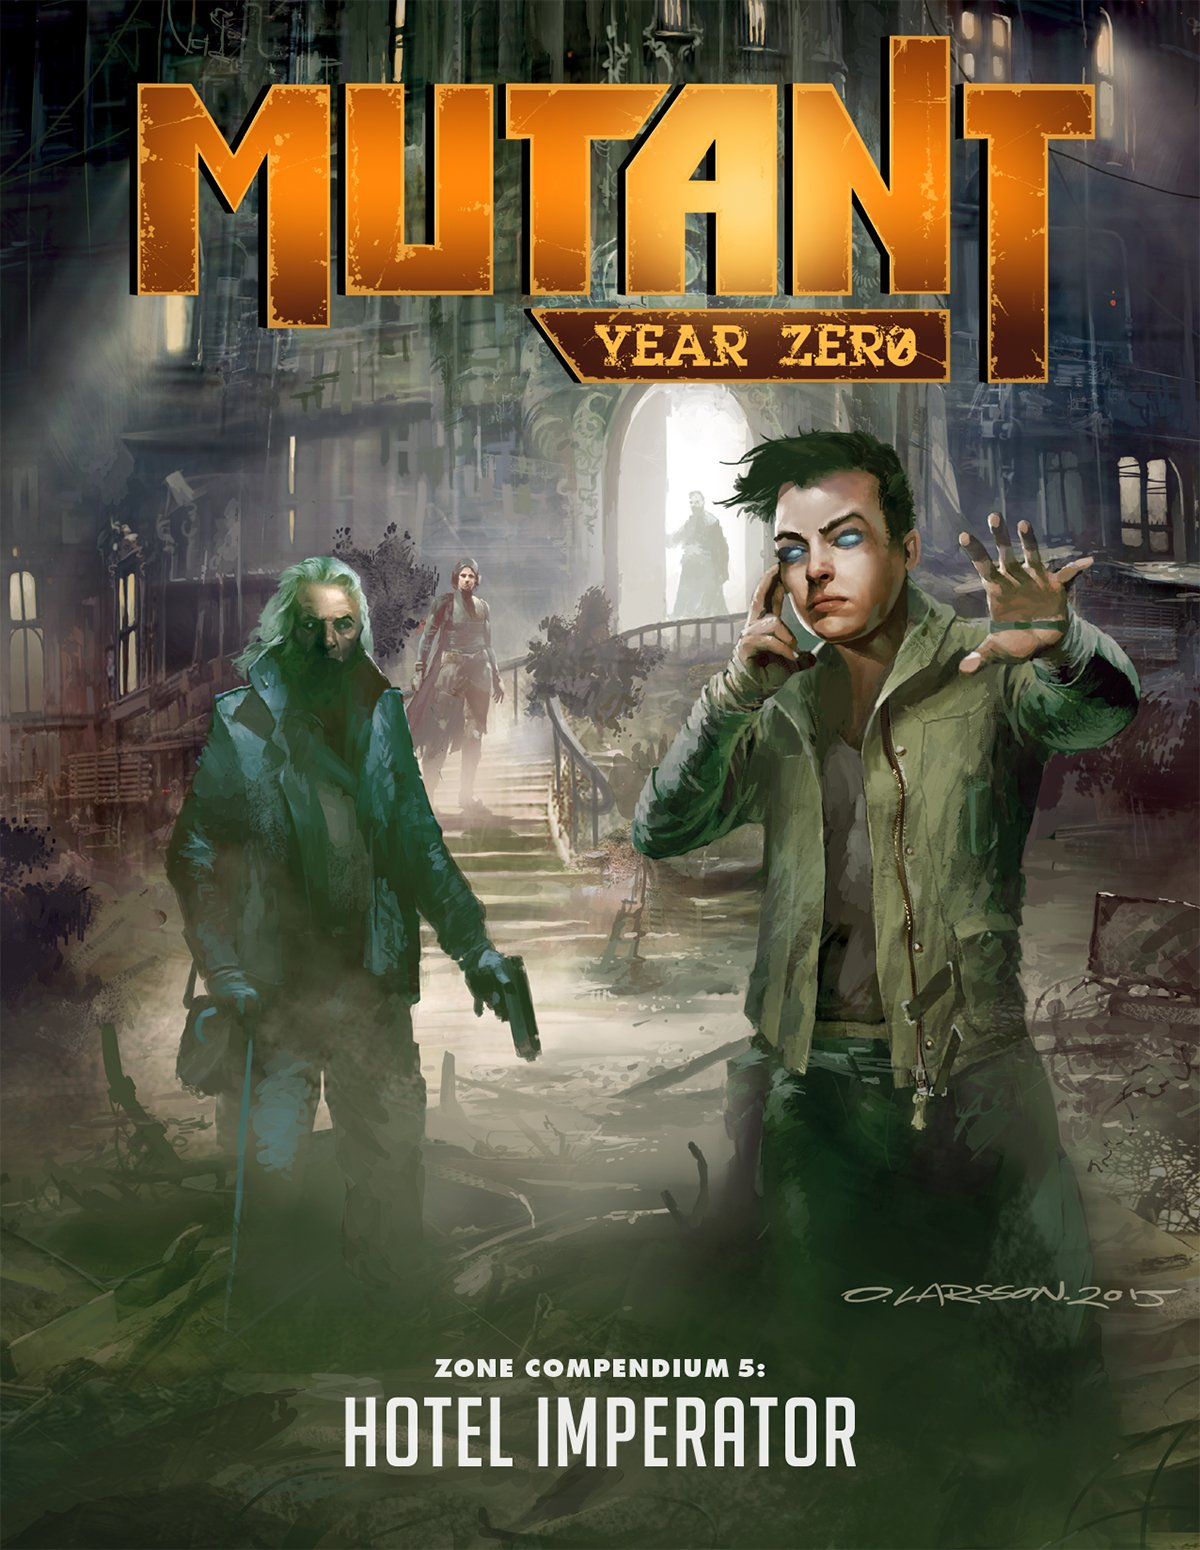 Mutant: Year Zero - Zone Compendium 5 - Hotel Imperator